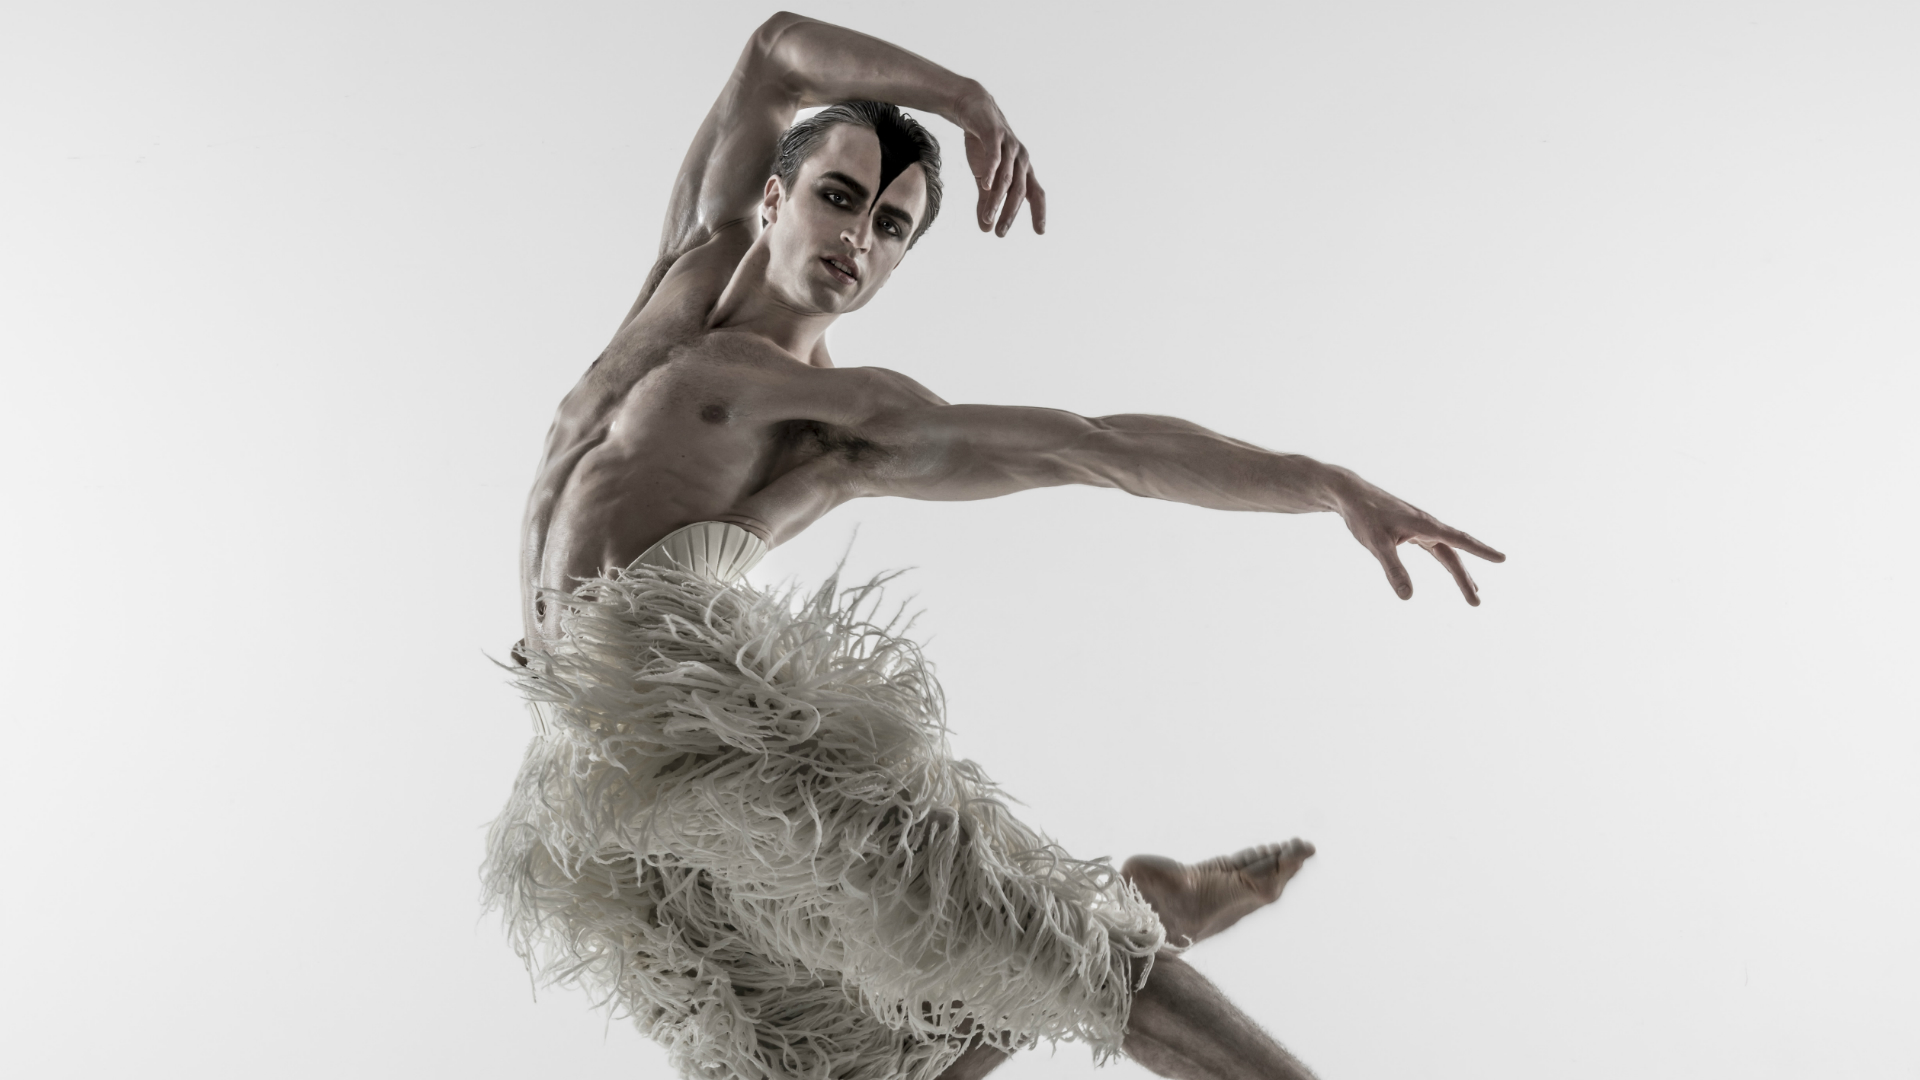 Matthew Bourne's Swan Lake at Sadler's Wells. Image courtesy of Raw PR.